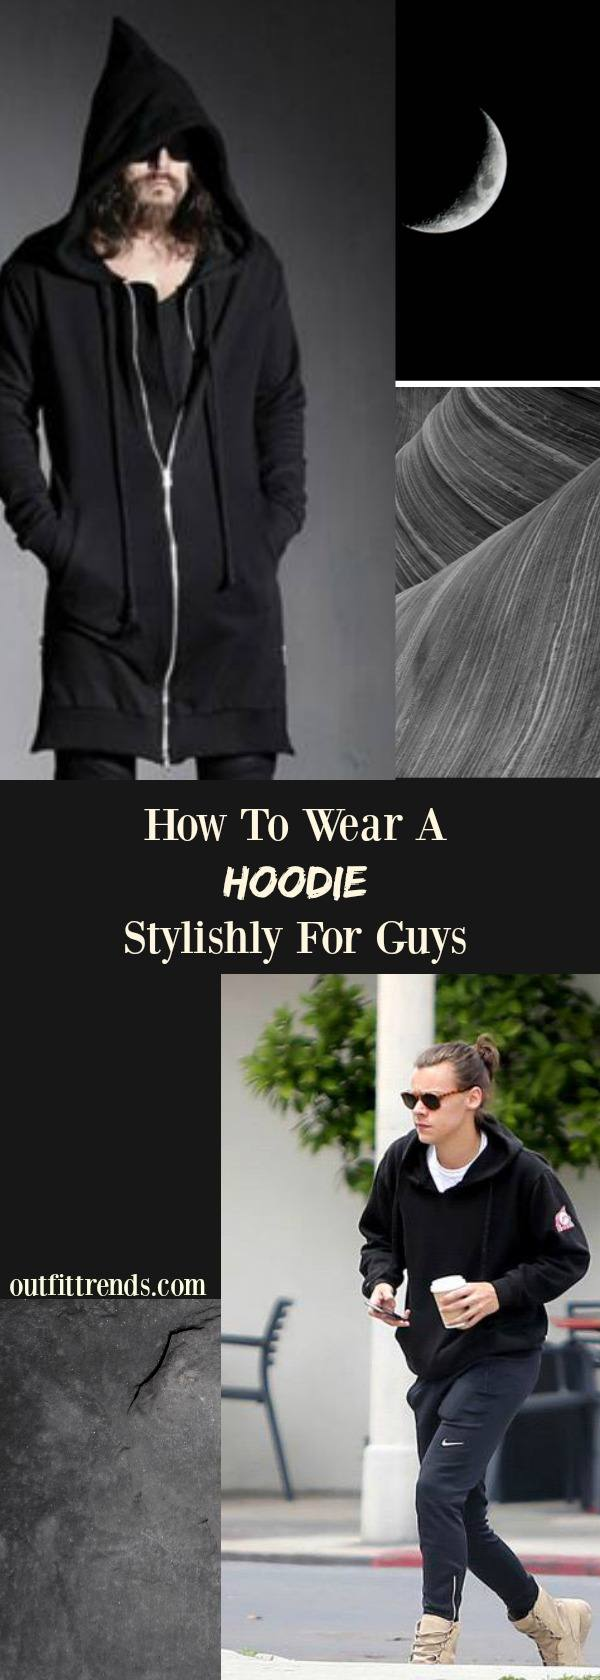 Dark-And-Off-Centered Men Hoodie Outfits-30 Ways for Guys to Wear a Hoodie Stylishly